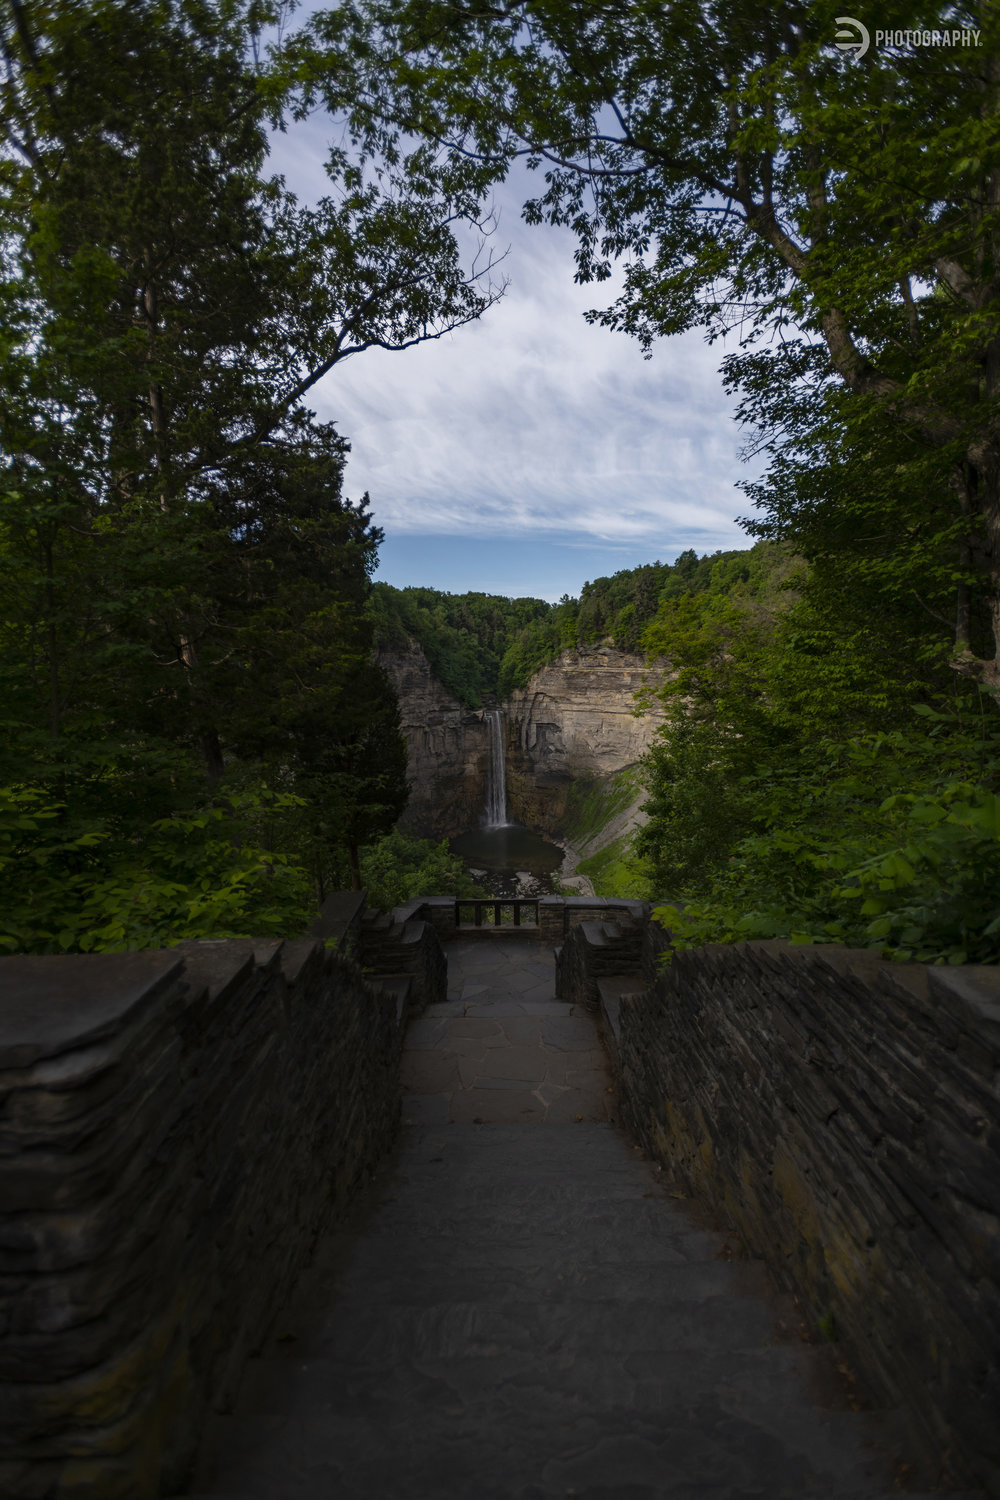 This is Taughannock Falls in Trumansburg. I figured if it was on my way home from Watkins Glen, I might as well stop and take in the beauty!